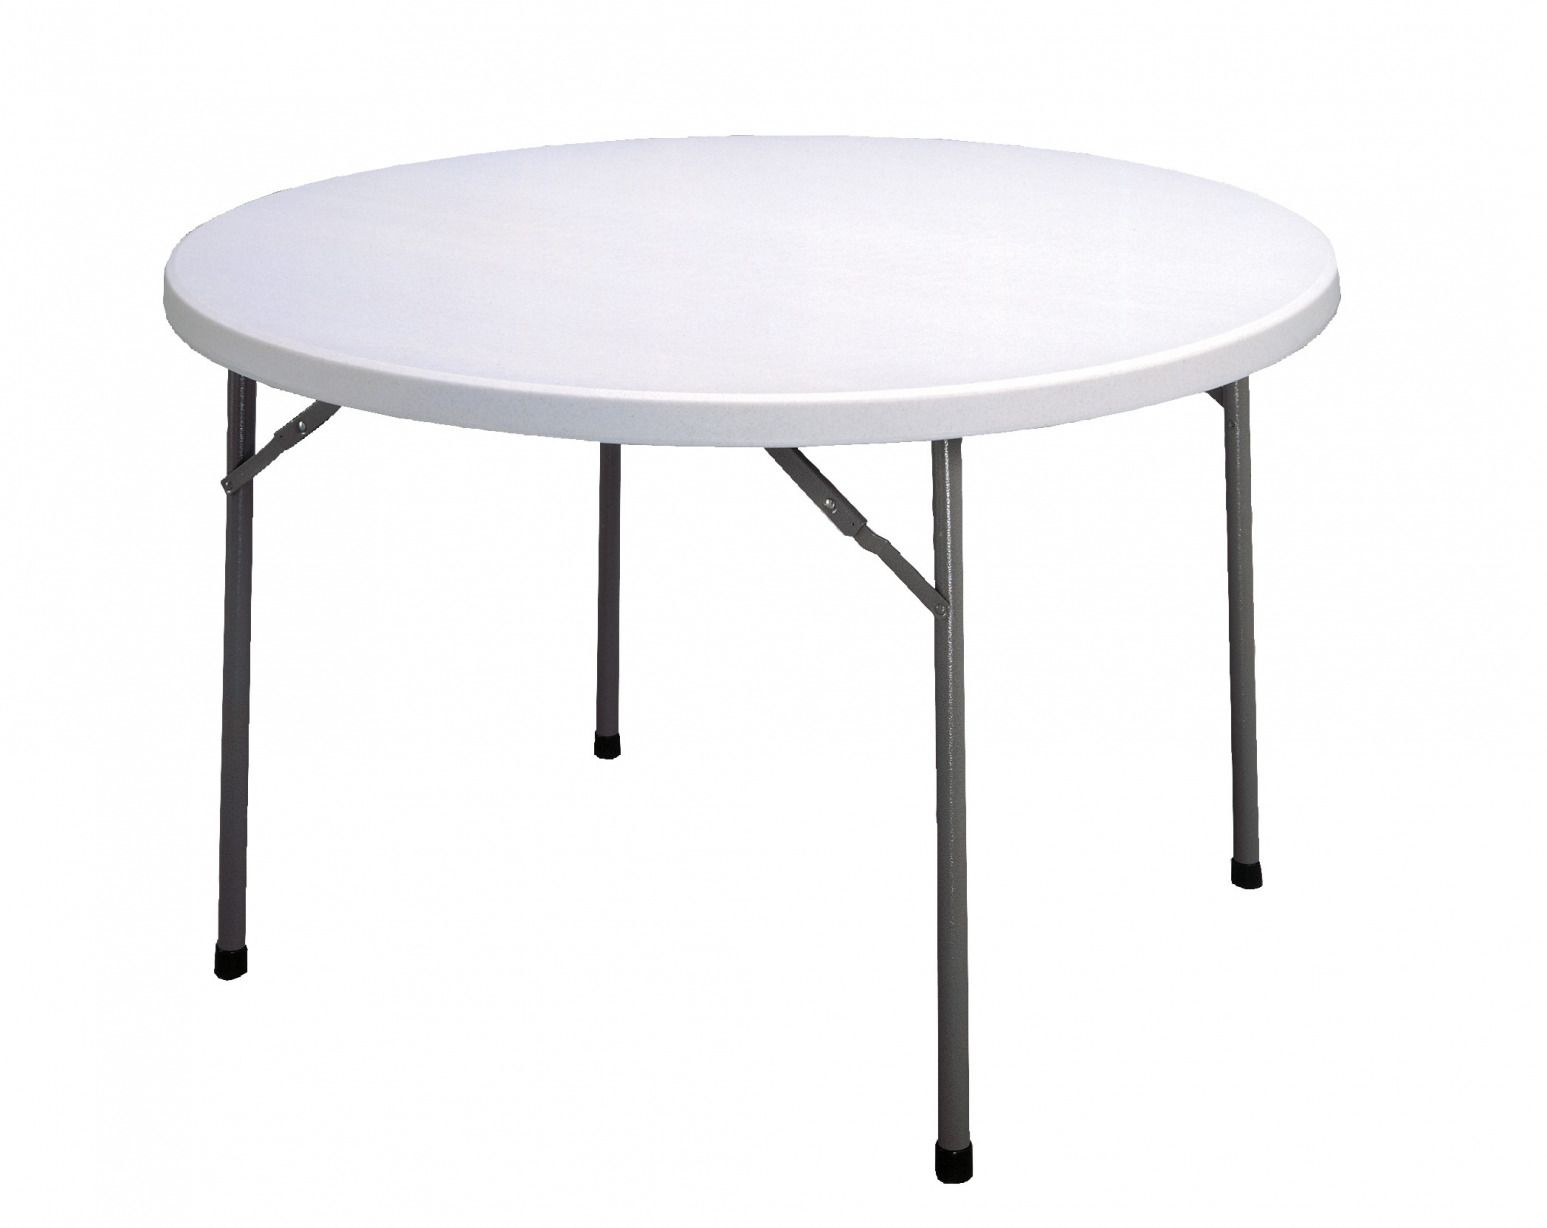 Merveilleux 100+ 48 Round Folding Table Costco   Best Paint For Furniture Check More At  Http